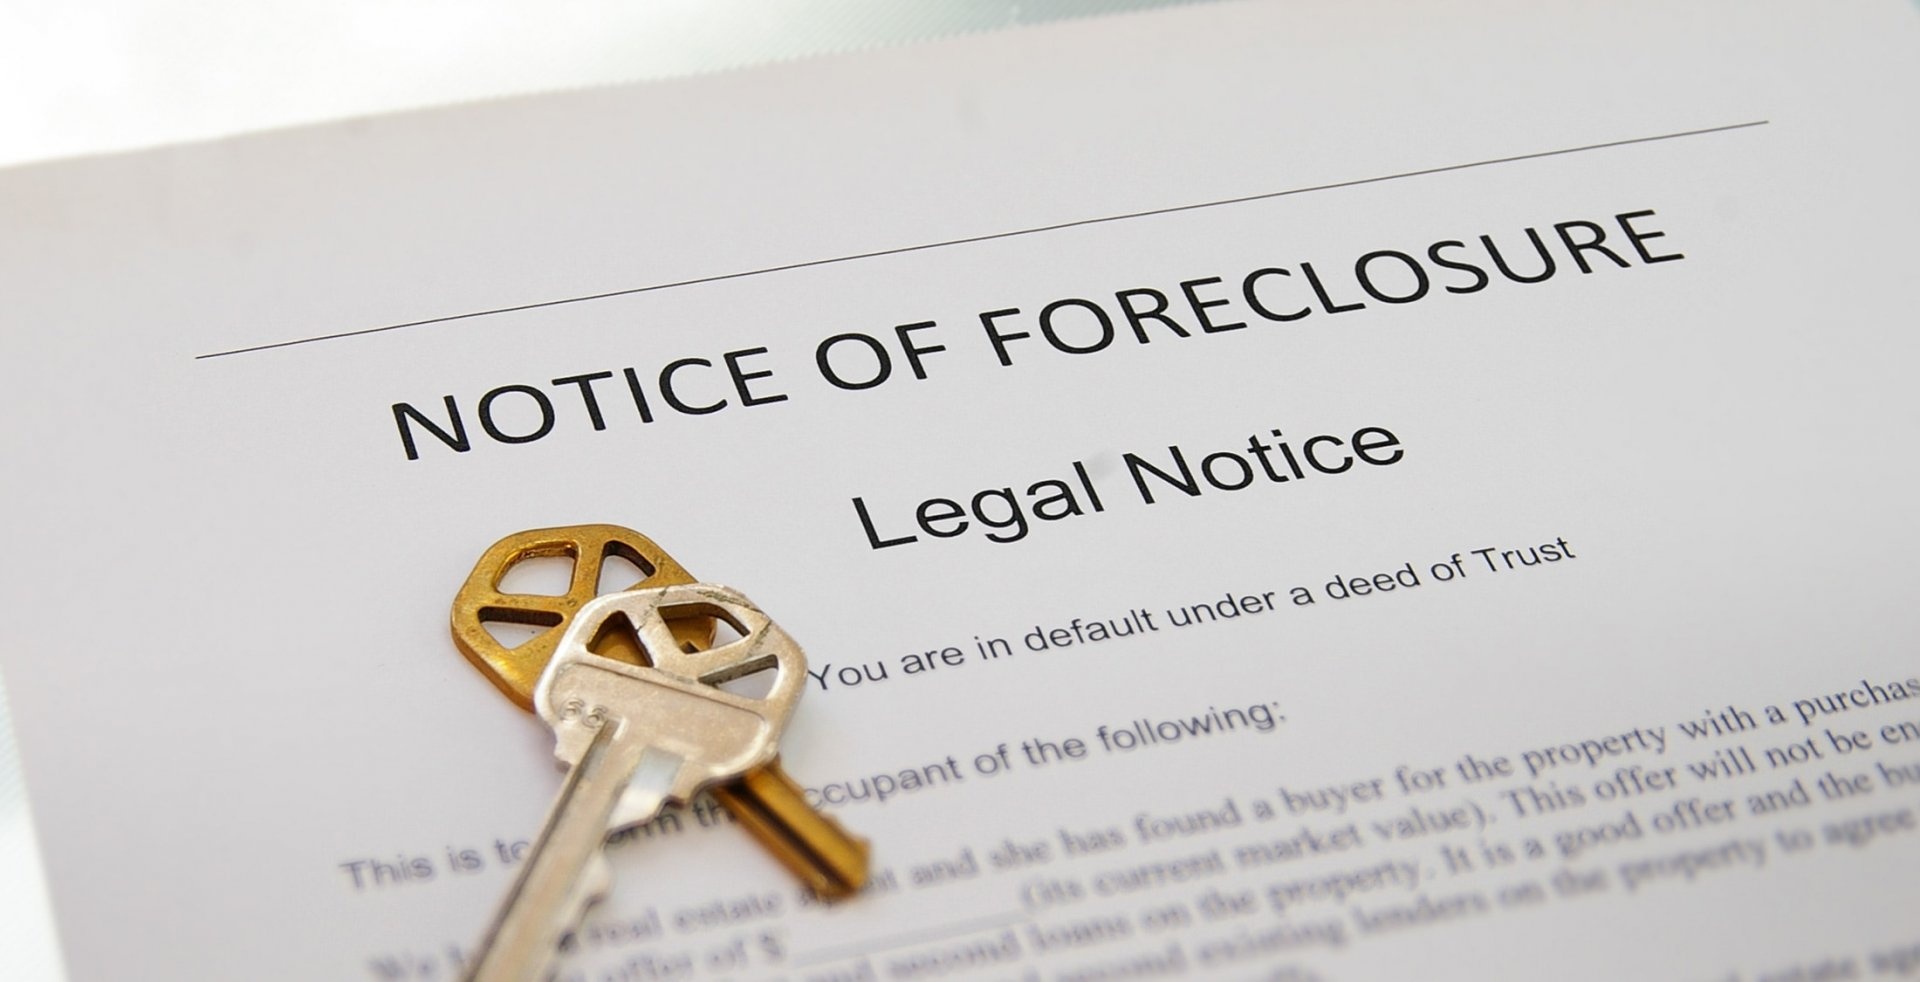 Second Mortgage Foreclosure